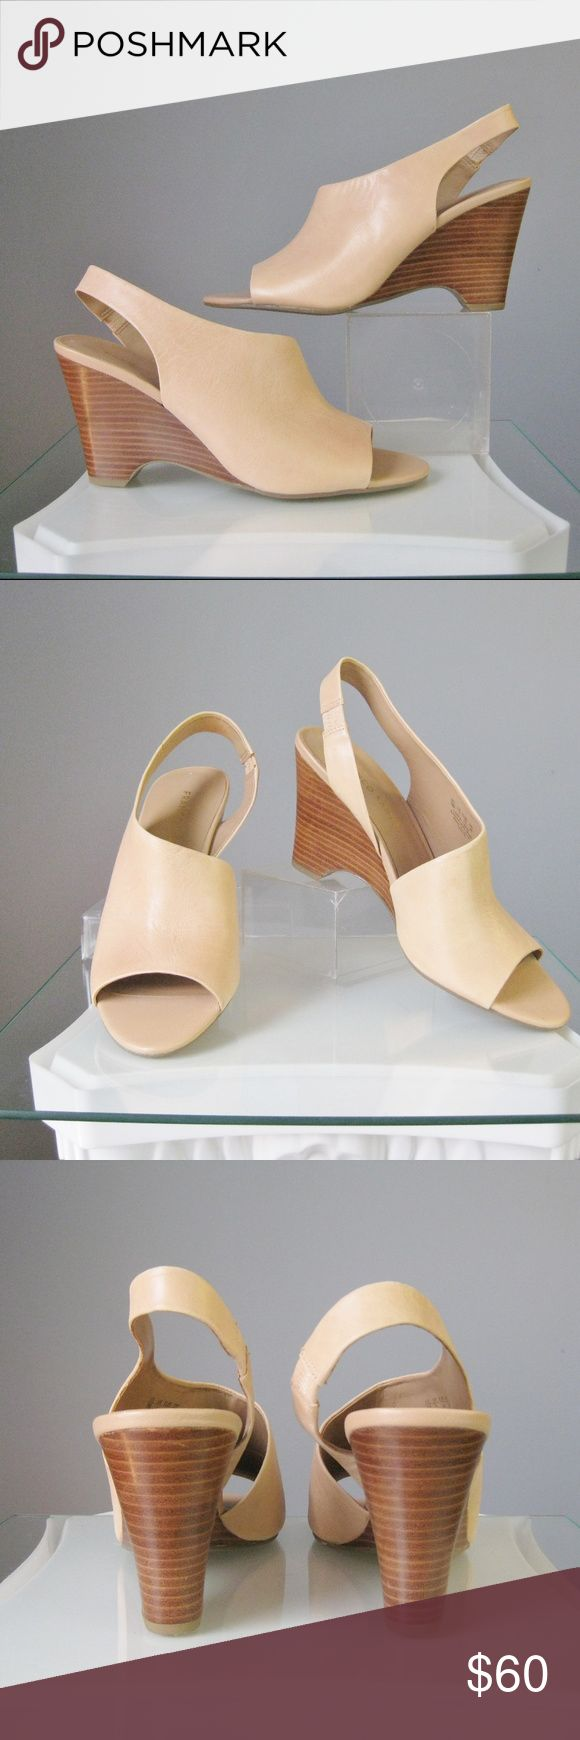 """NWOB France Sarto Full Cover Slings Nude Uber Chic and sure to be a staple in your summer shoe wardrobe Leg lengthening color, full cover to most of your foot All you need is a killer pedicure! Size 9 US  7 UK  40 EUR   Leather upper, balance man made  These have never been worn but have some signs of trying on - Excellent condition except for faint dark line across the top of the left shoe and a very small scratch on the back of the left heel Heel: 3 3/8""""  Thank you for looking! #27080…"""